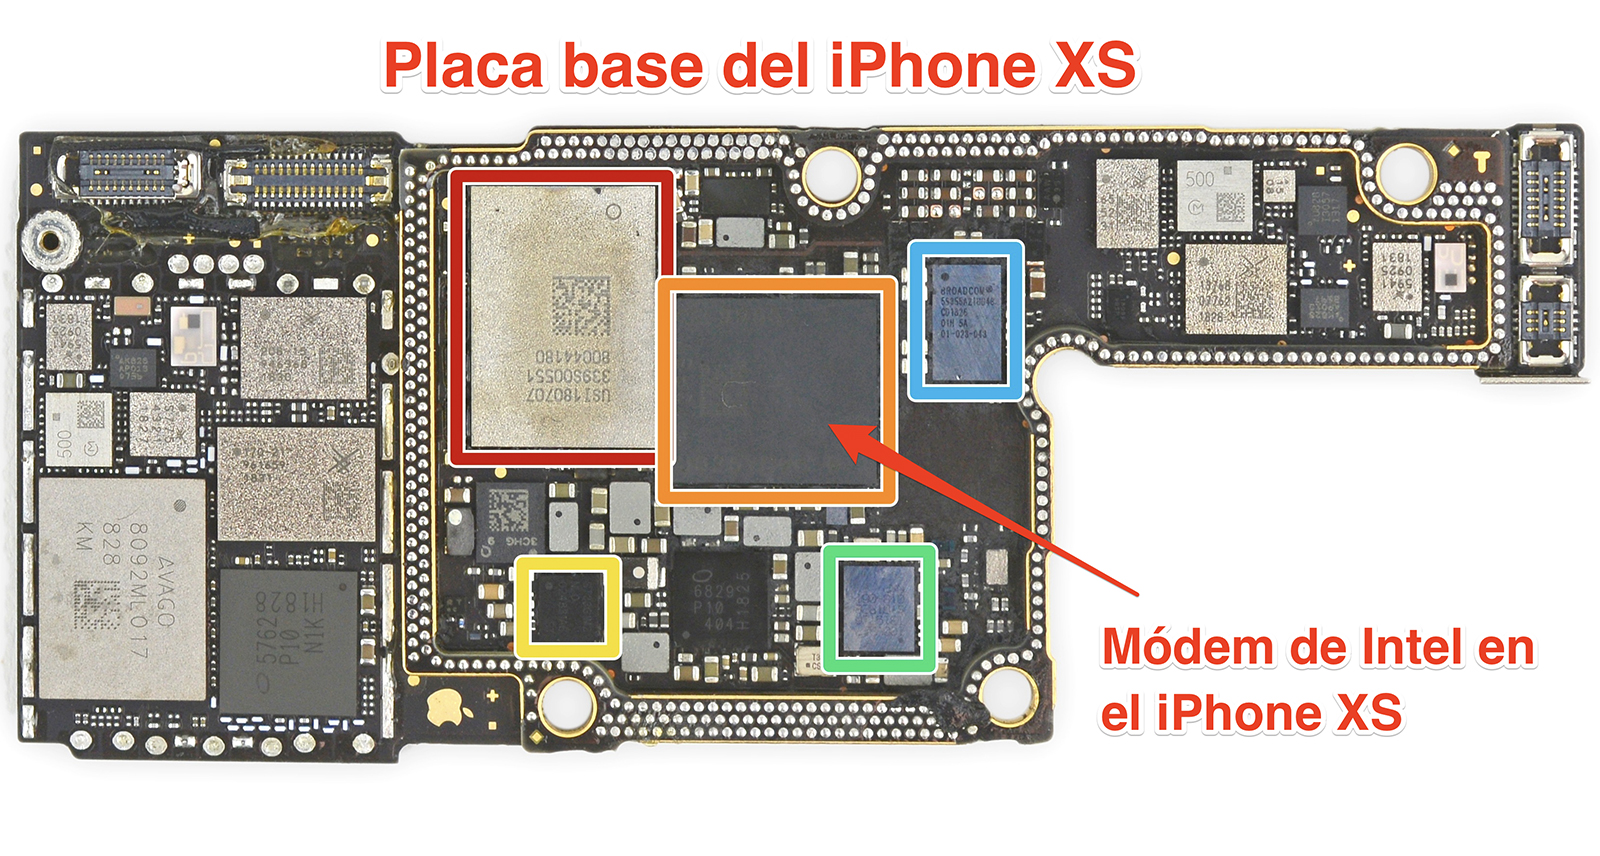 Placa base del iPhone XS con el módem de Intel indicado.